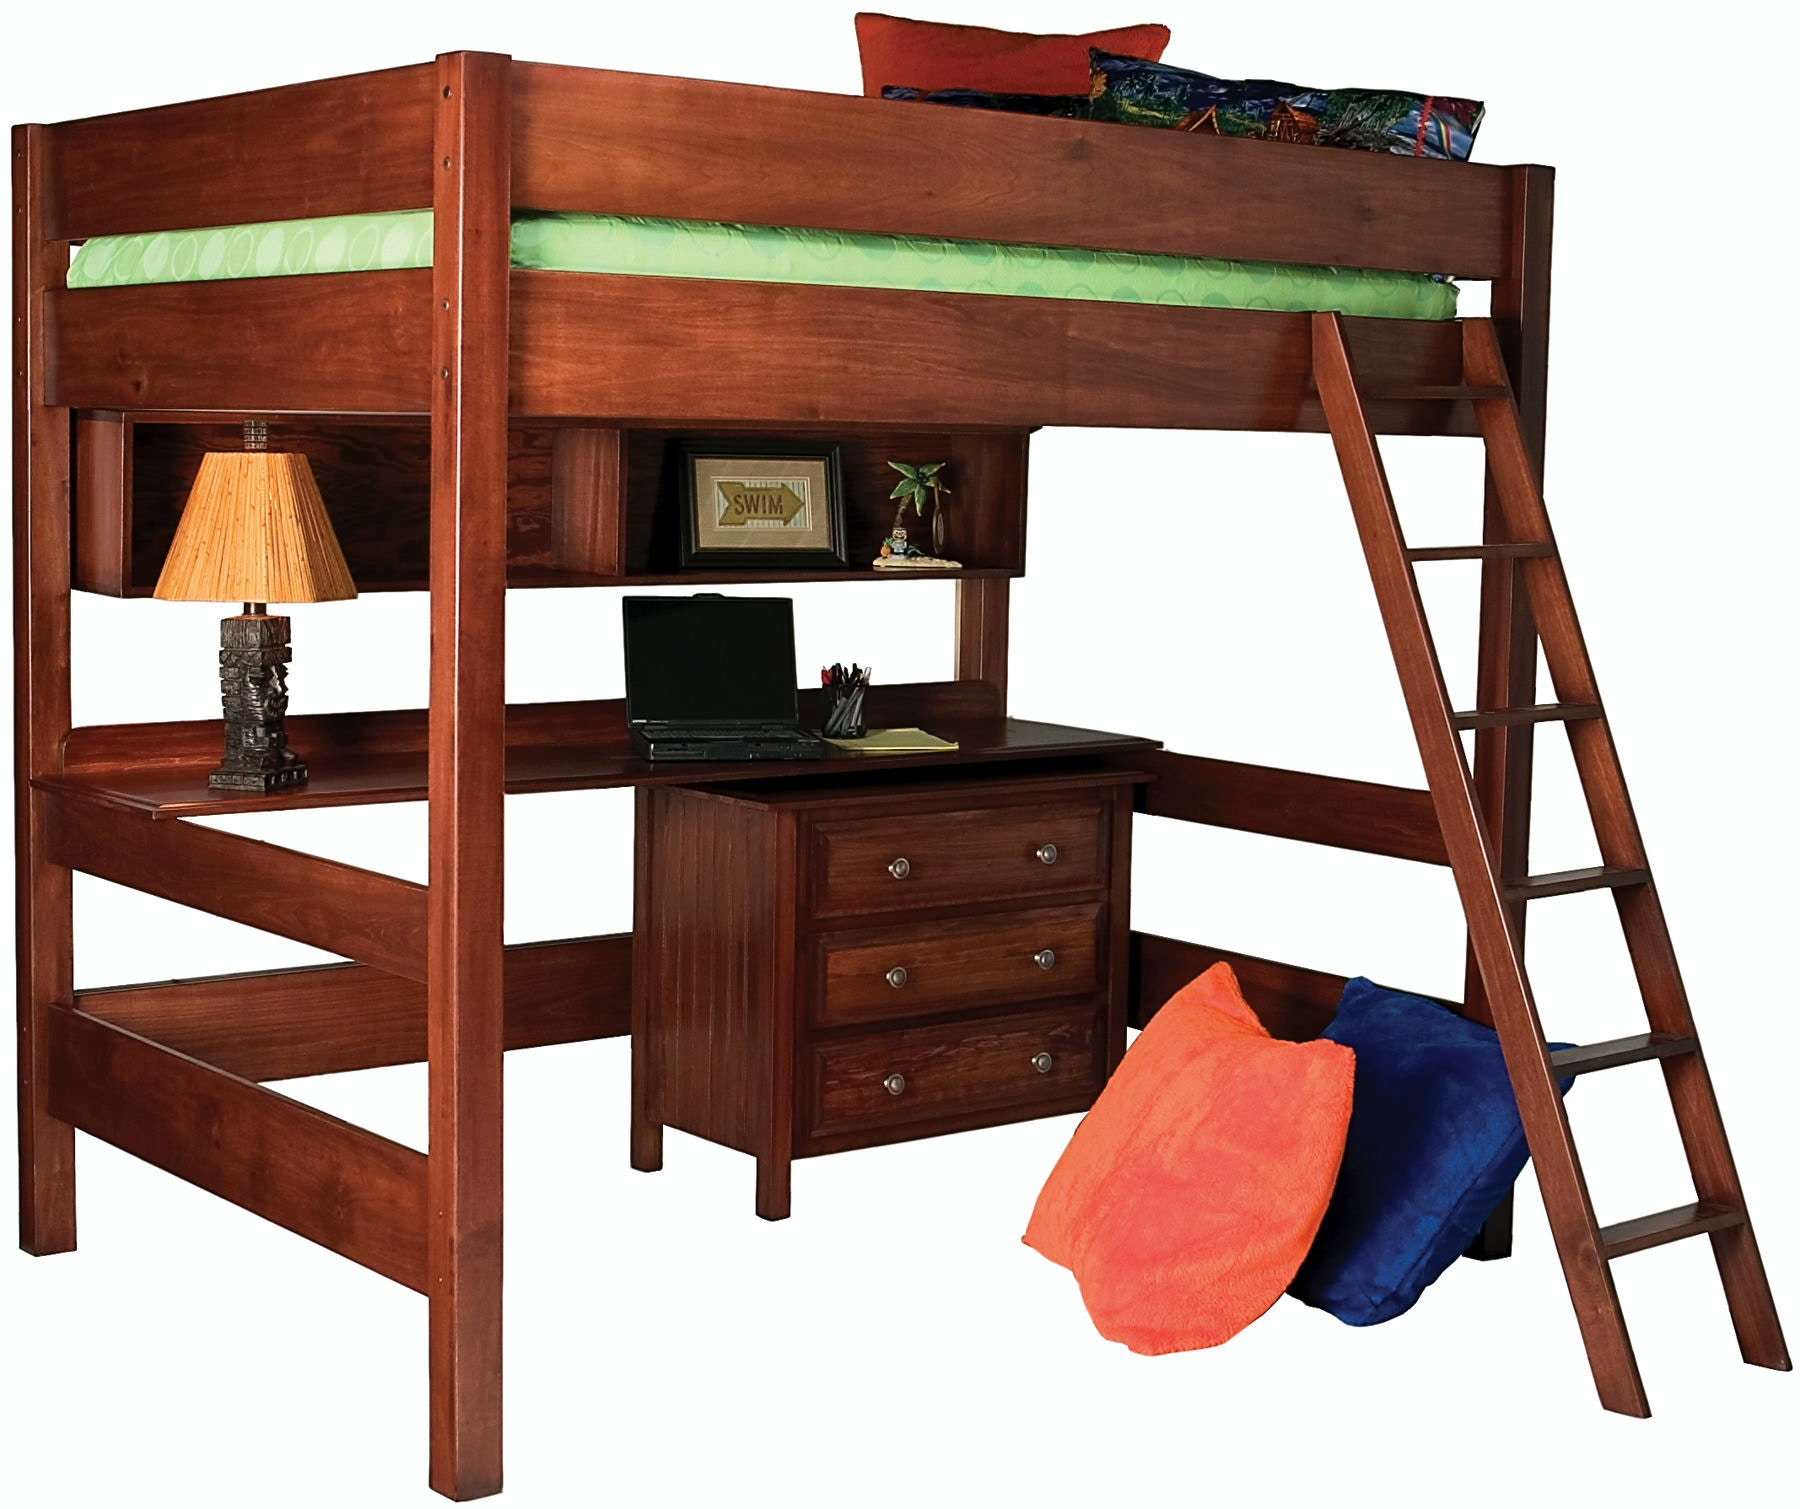 Northern Heritage Bedroom Fremont Bunk With Ladder Nh1020 Penny